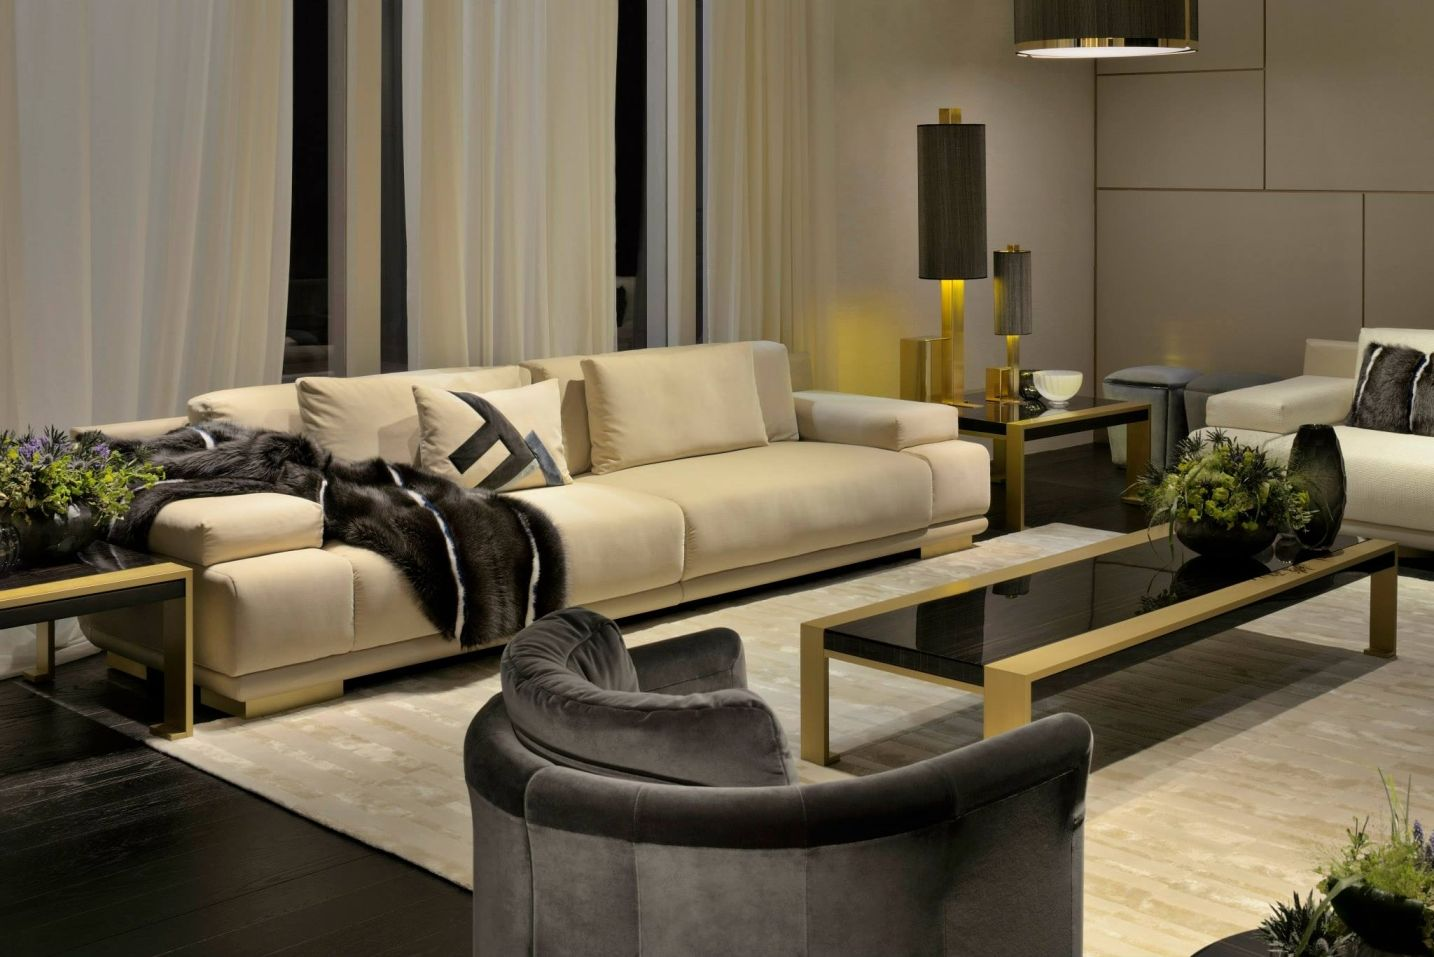 A Look At The New Fendi Casa Collection By Thierry Lemaire. A Contemporary  Art De Vivre. The Sleek Geometry Of The New Fendi Casa Sofas And Armchairs  By ...